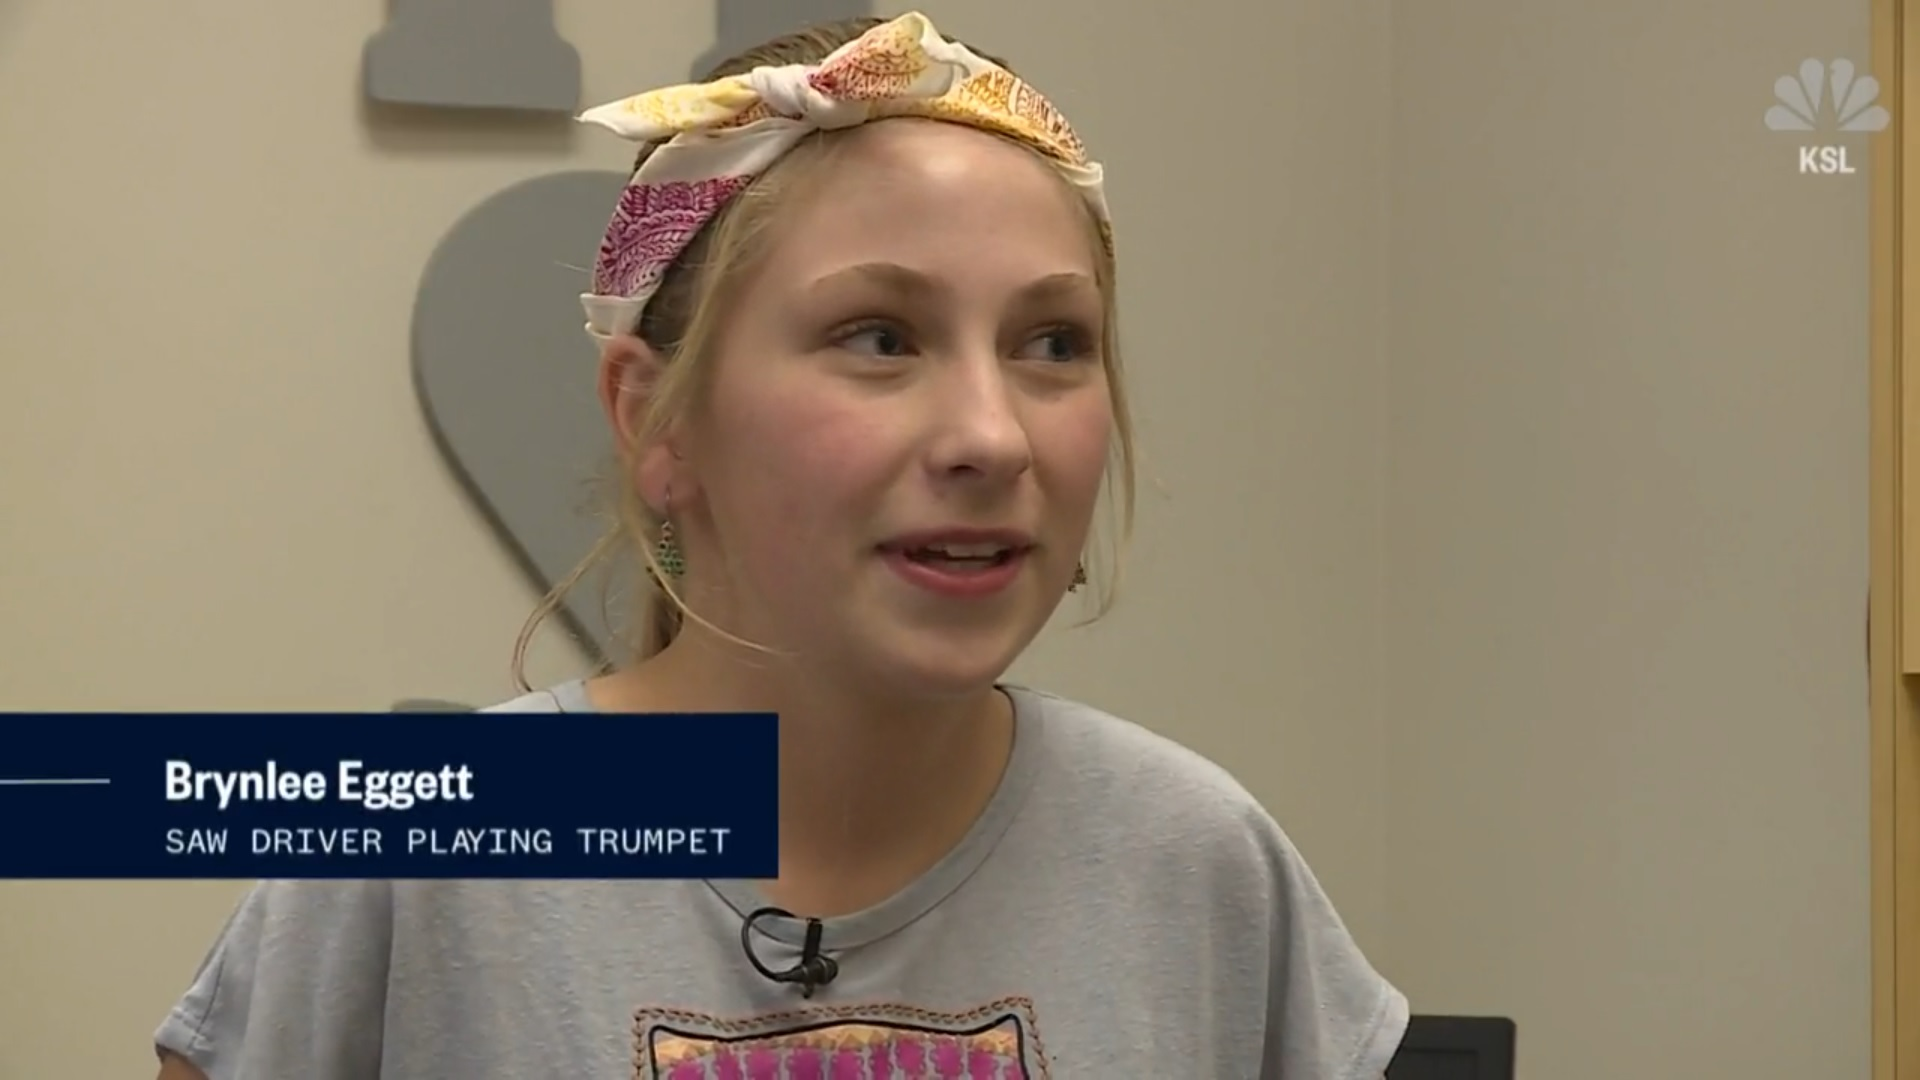 Brynlee Eggett: Saw Driver Playing Trumpet